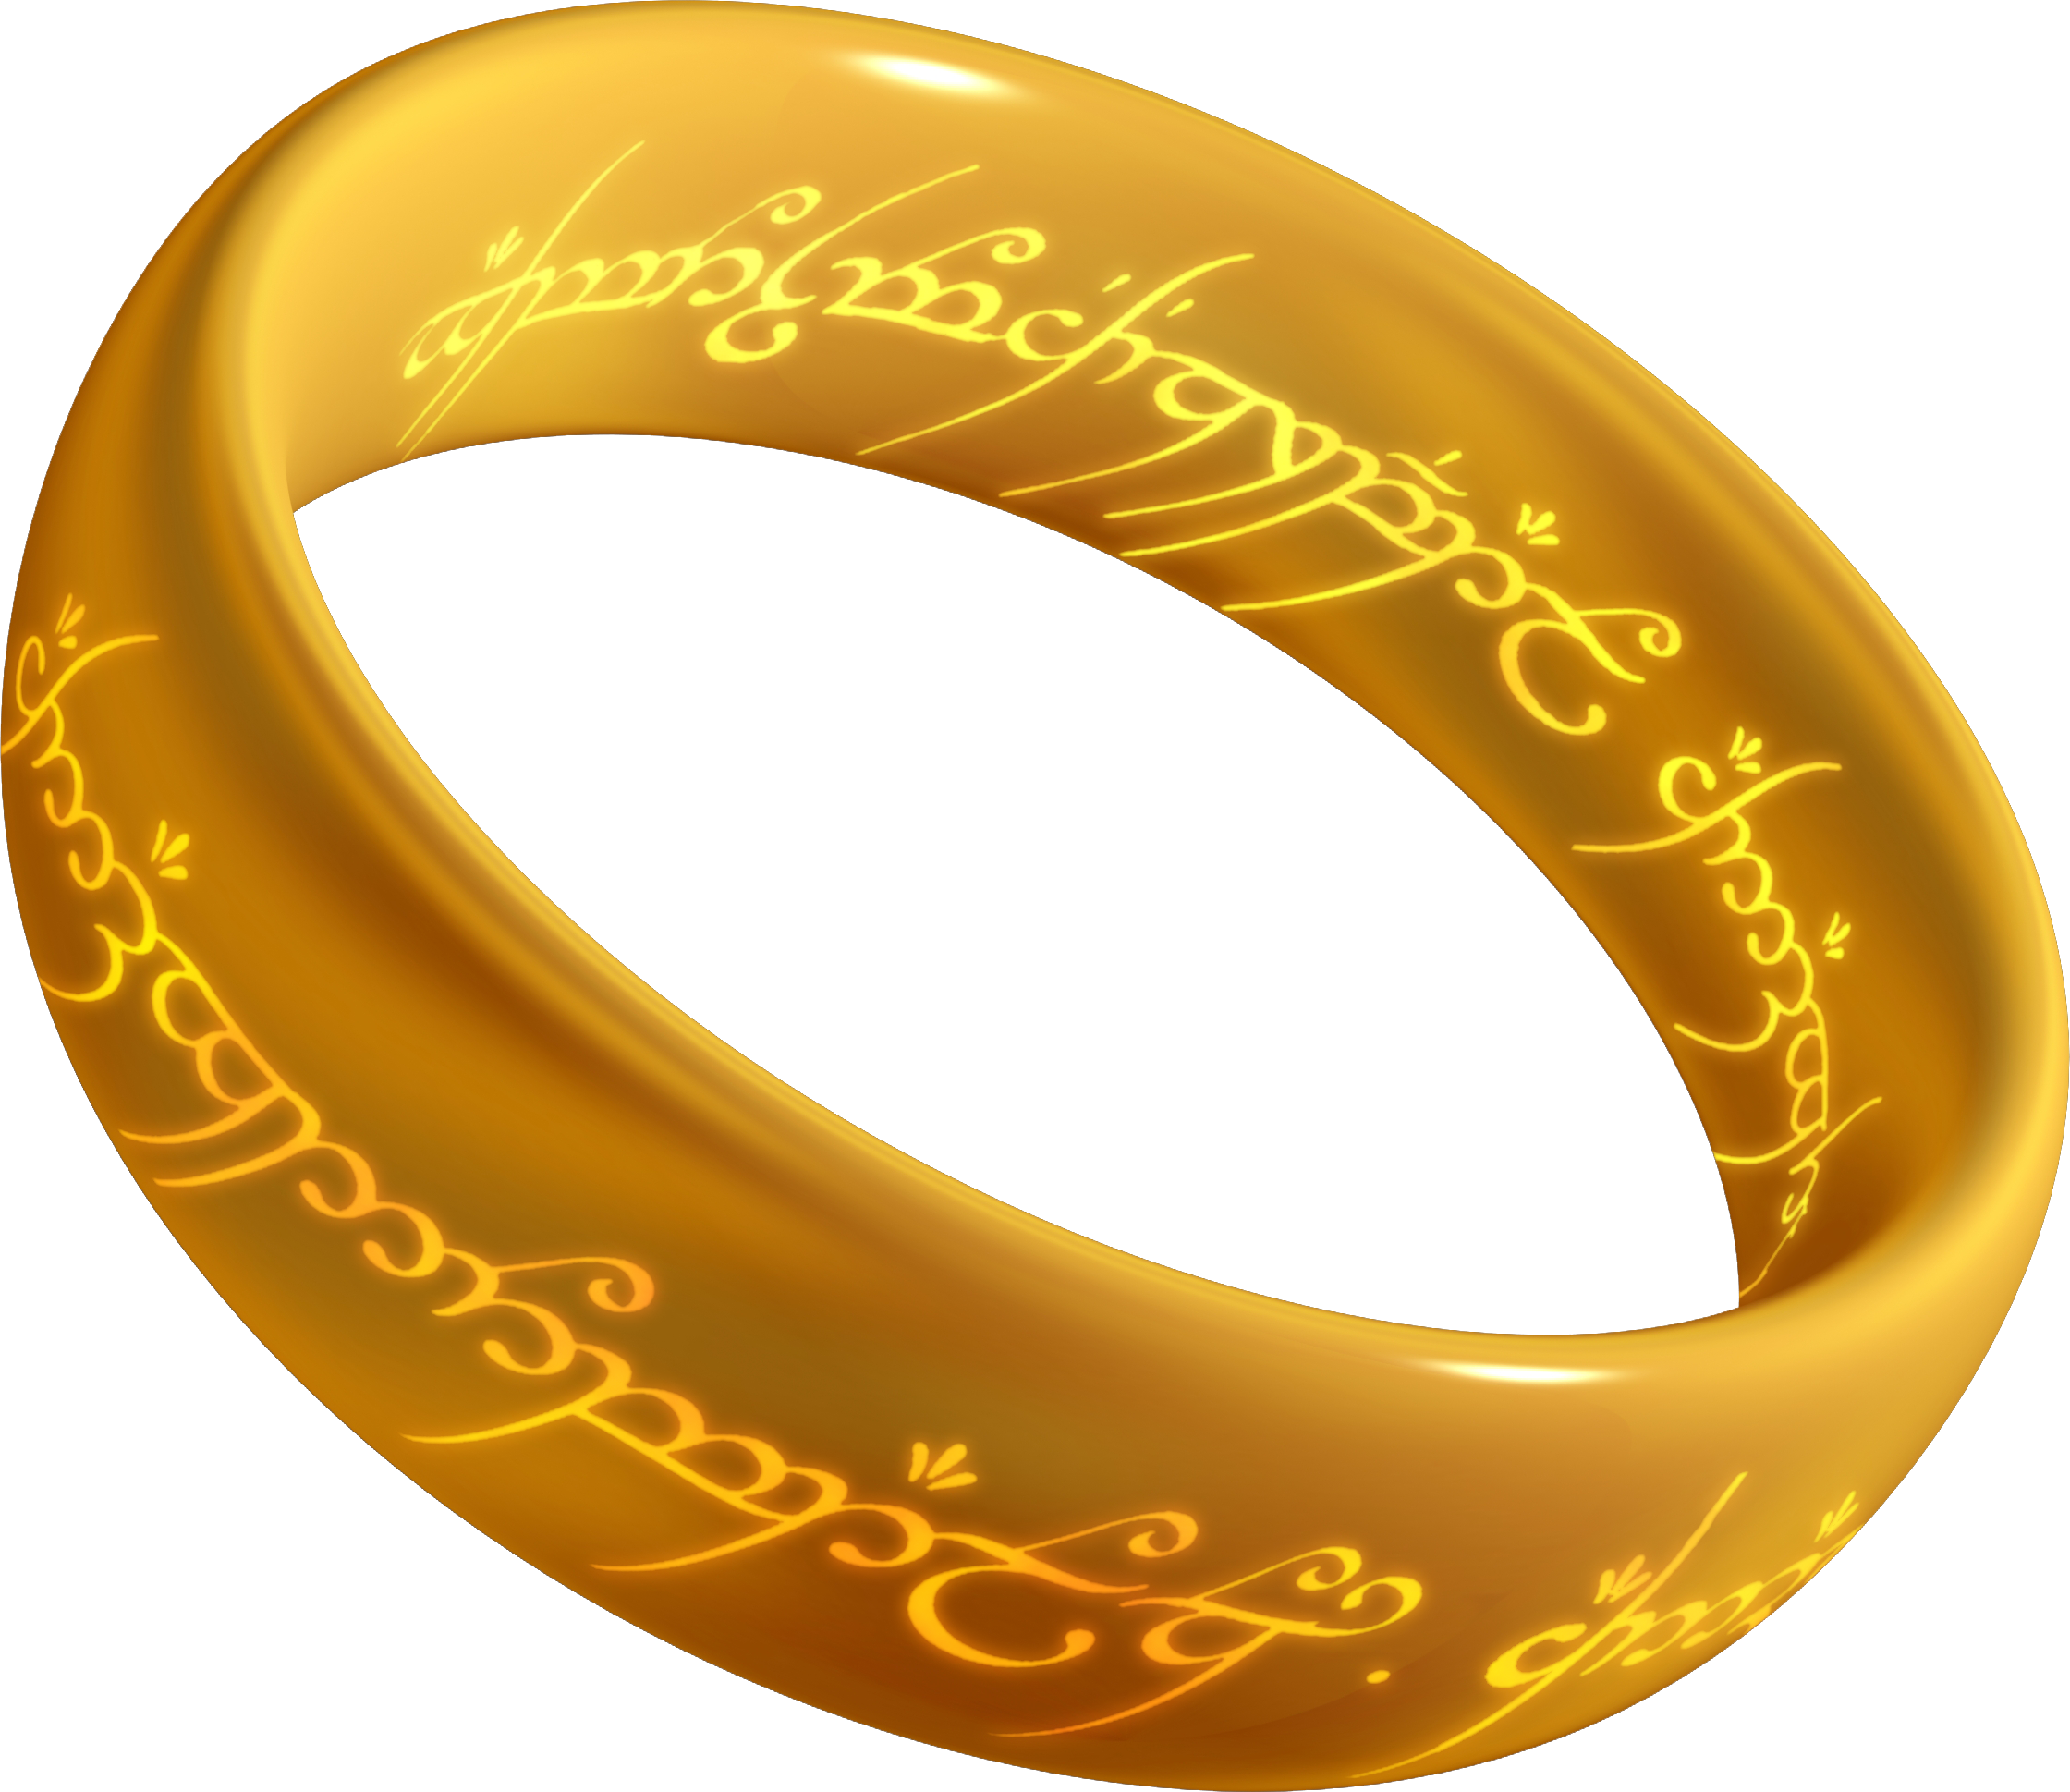 Lord of the rings clipart.